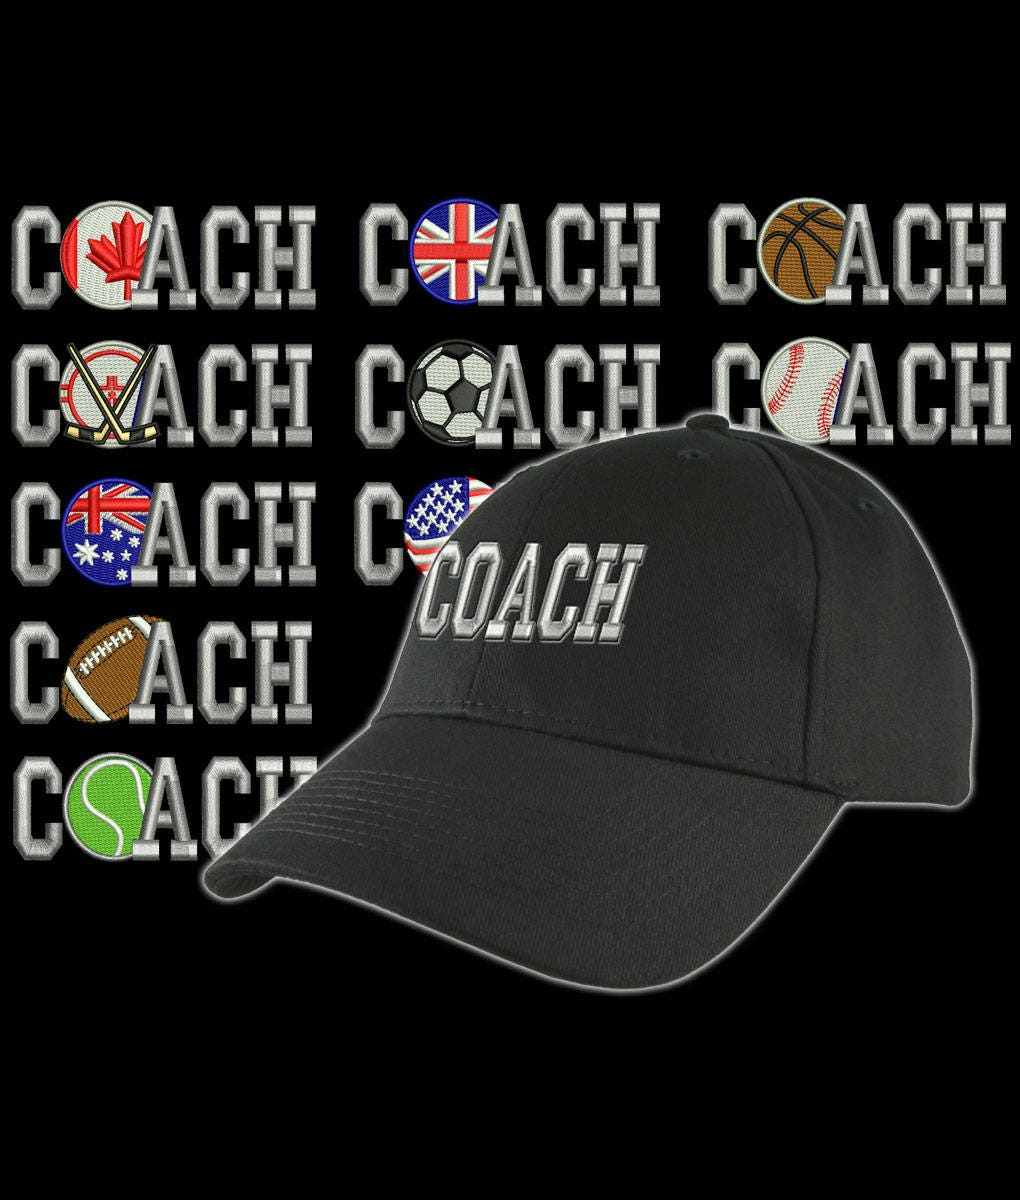 7c7555be Custom Personalized Coach Embroidery on an Adjustable Structured Black Baseball  Cap Front Decor Selection with Options for Side and Back